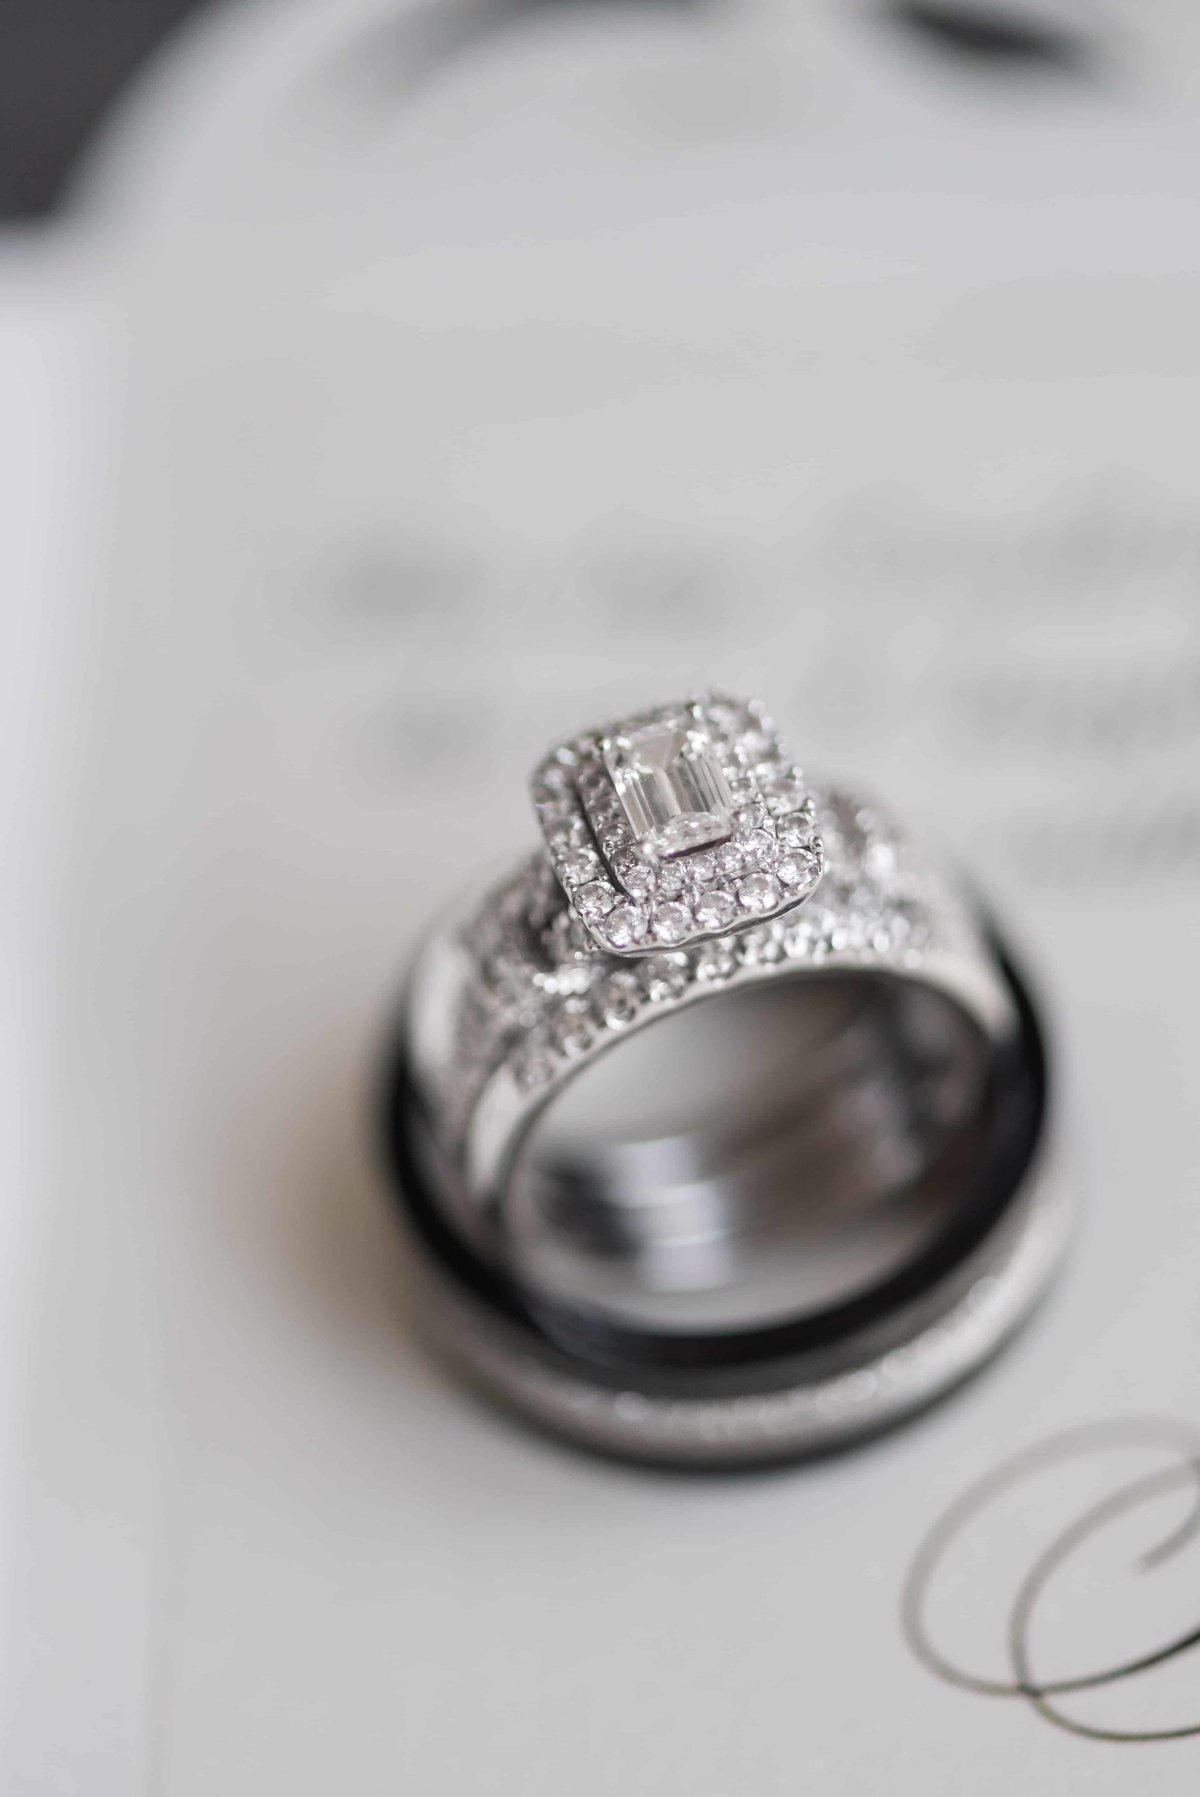 Macro detailed shot of couples wedding rings.